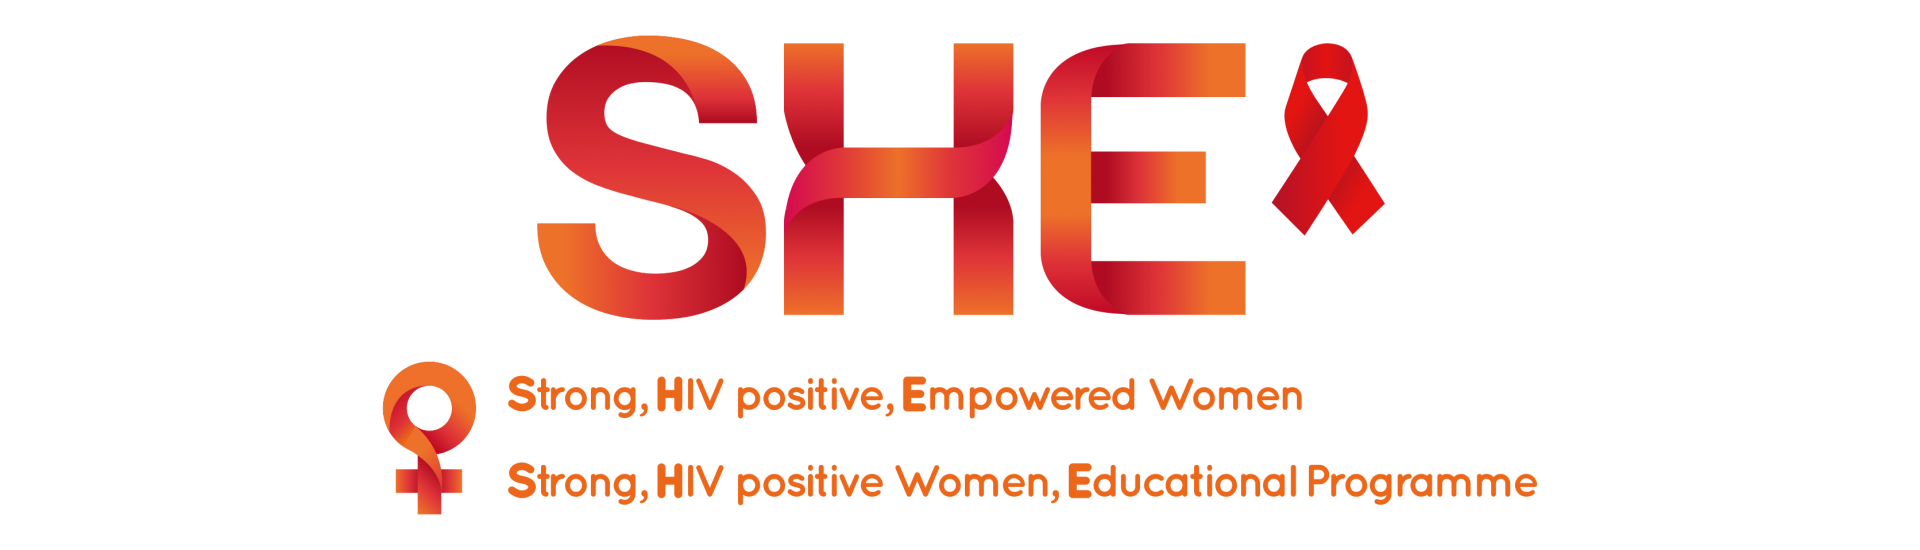 SHE-Workshop am 7. November 2018